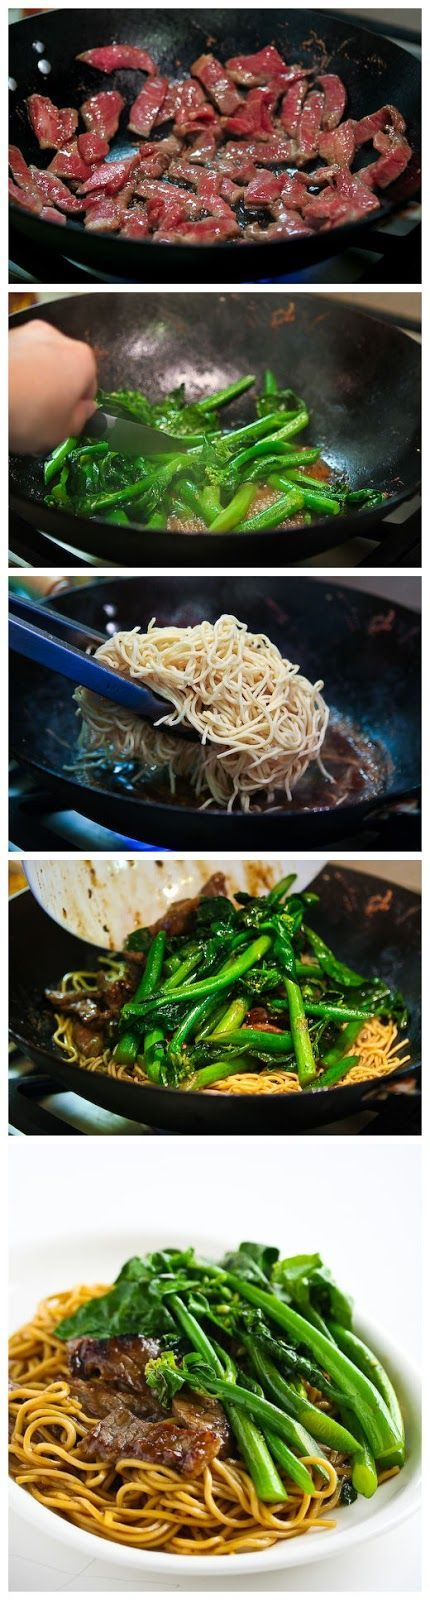 Chinese Broccoli Beef Noodle Stir Fry | Recept | Wok ...